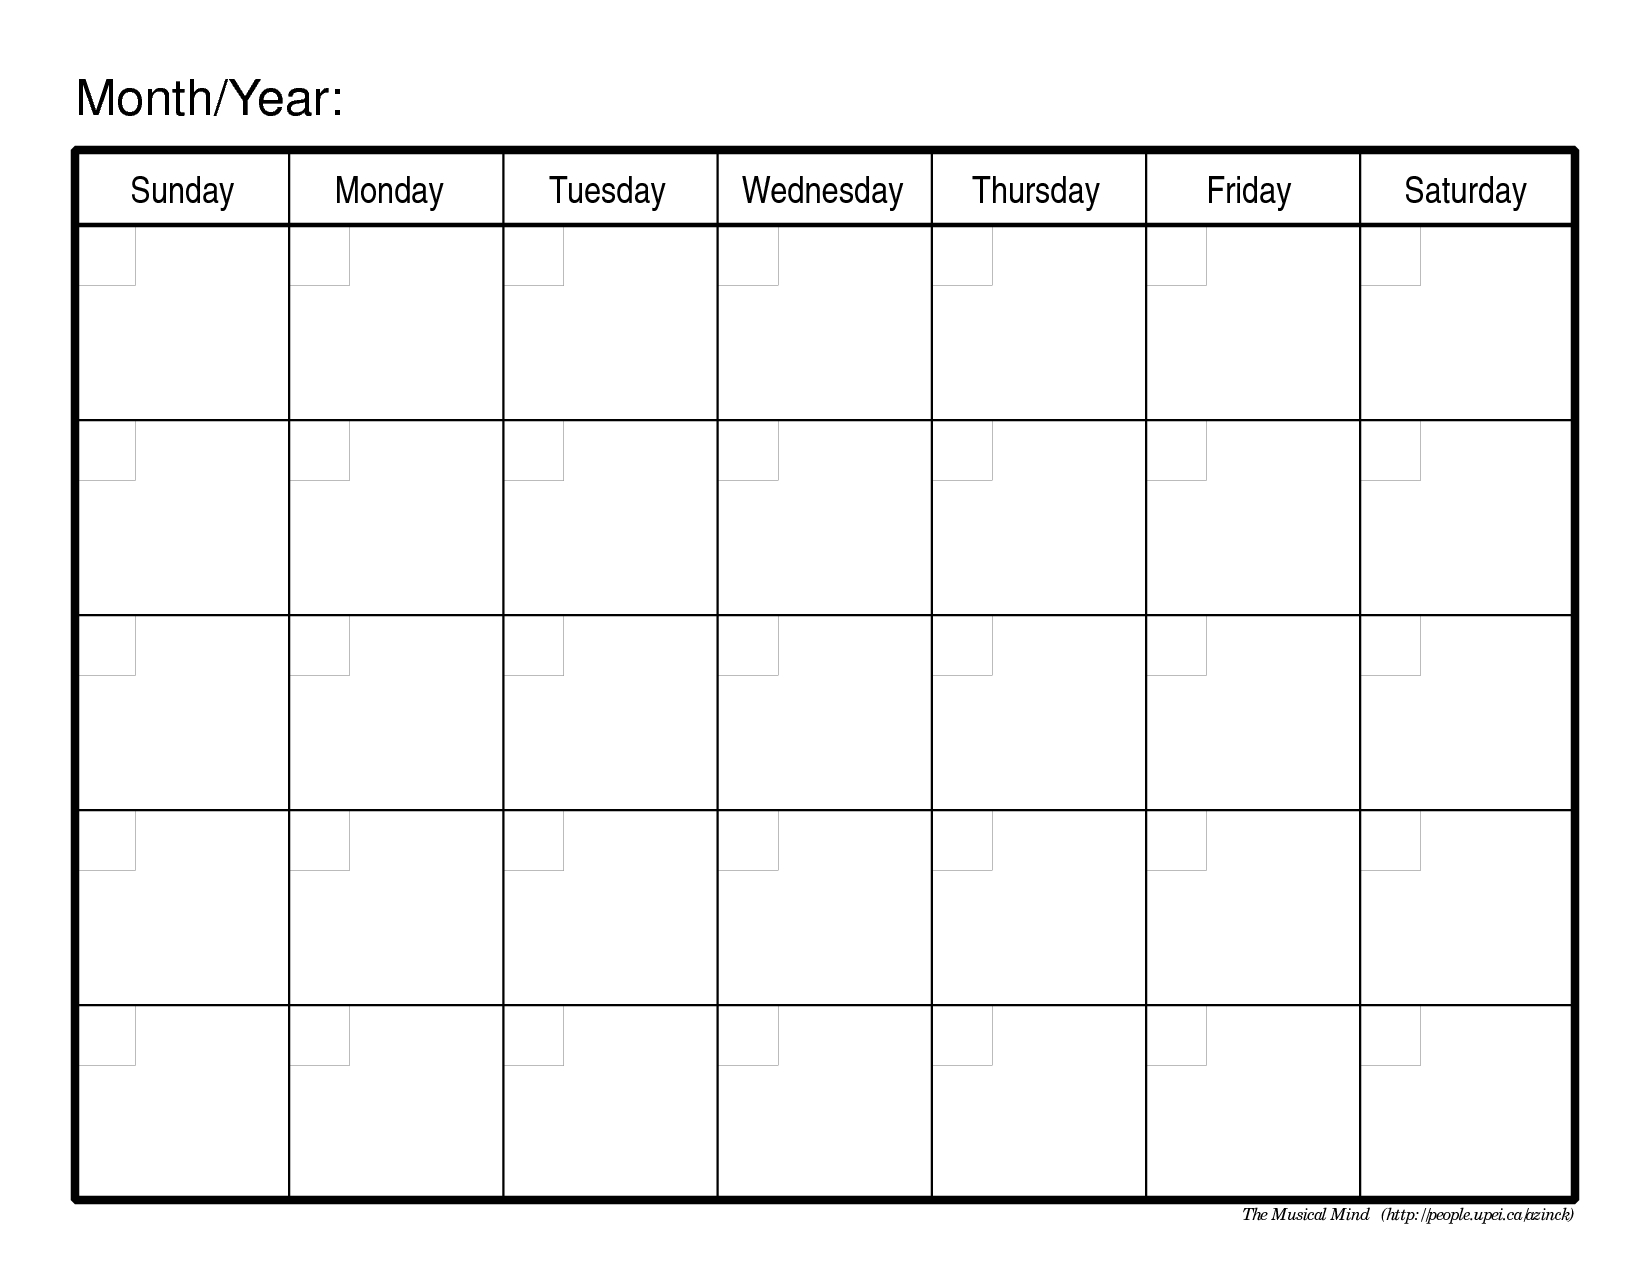 16 Blank Printable Weekly Calendars Templates Images - Blank intended for Printable Blank Monthly Calendar With Lines